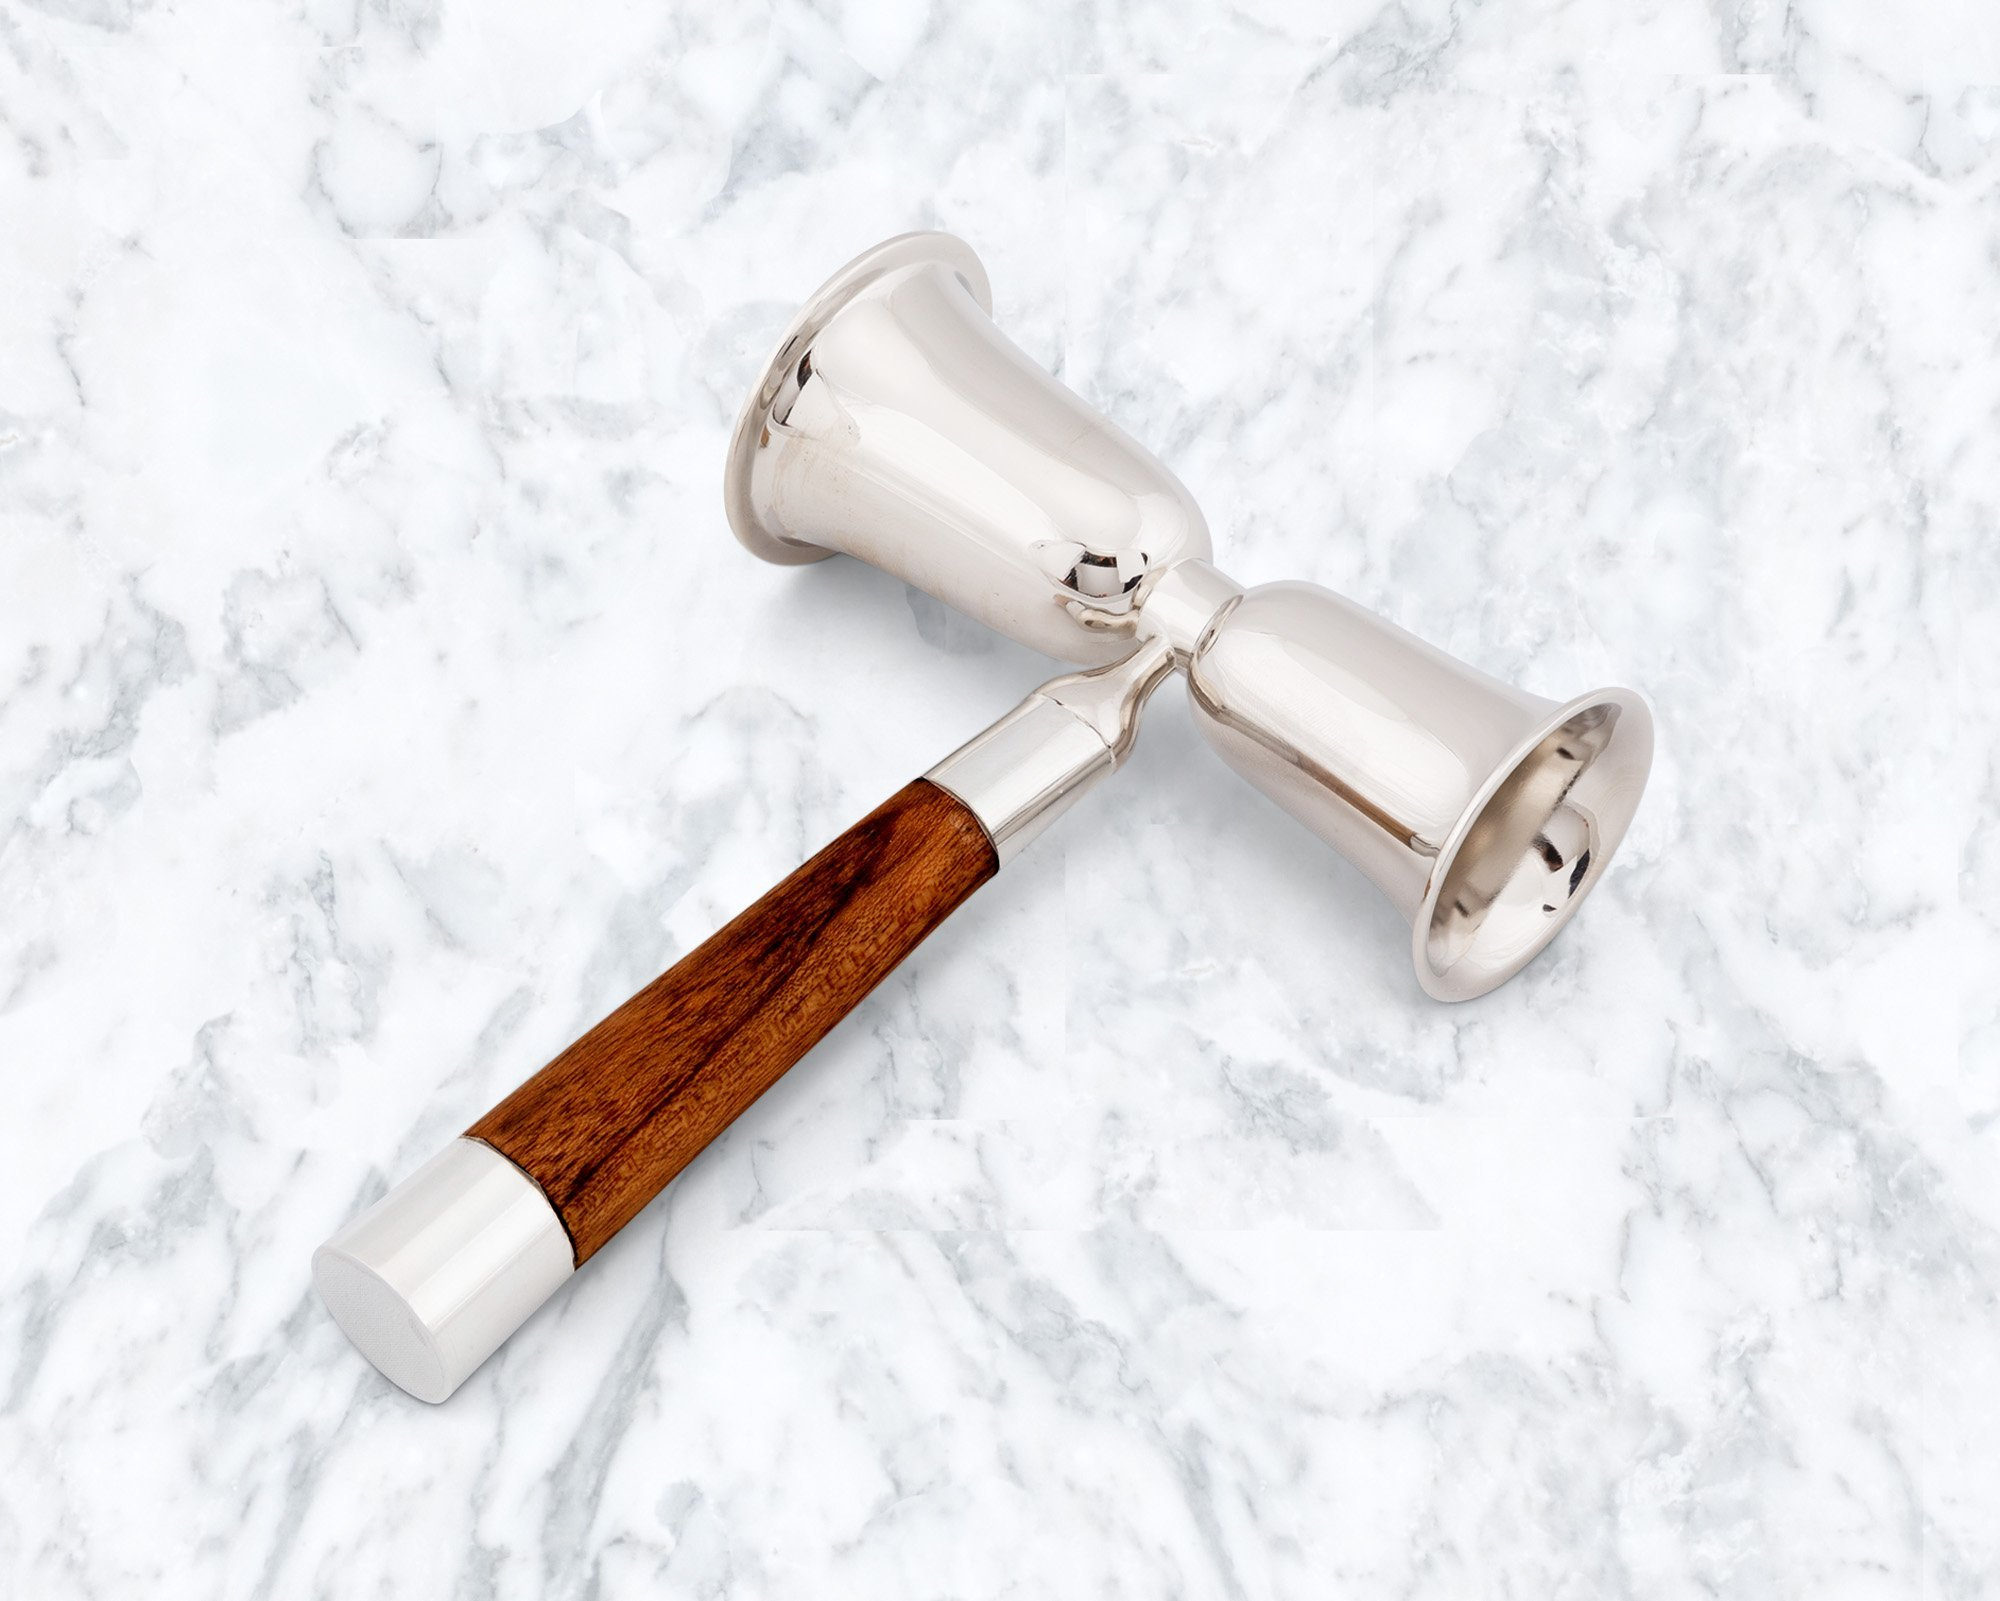 Vagabond House Modern Tribeca Collection Double Jigger; Pewter and Teak Handles